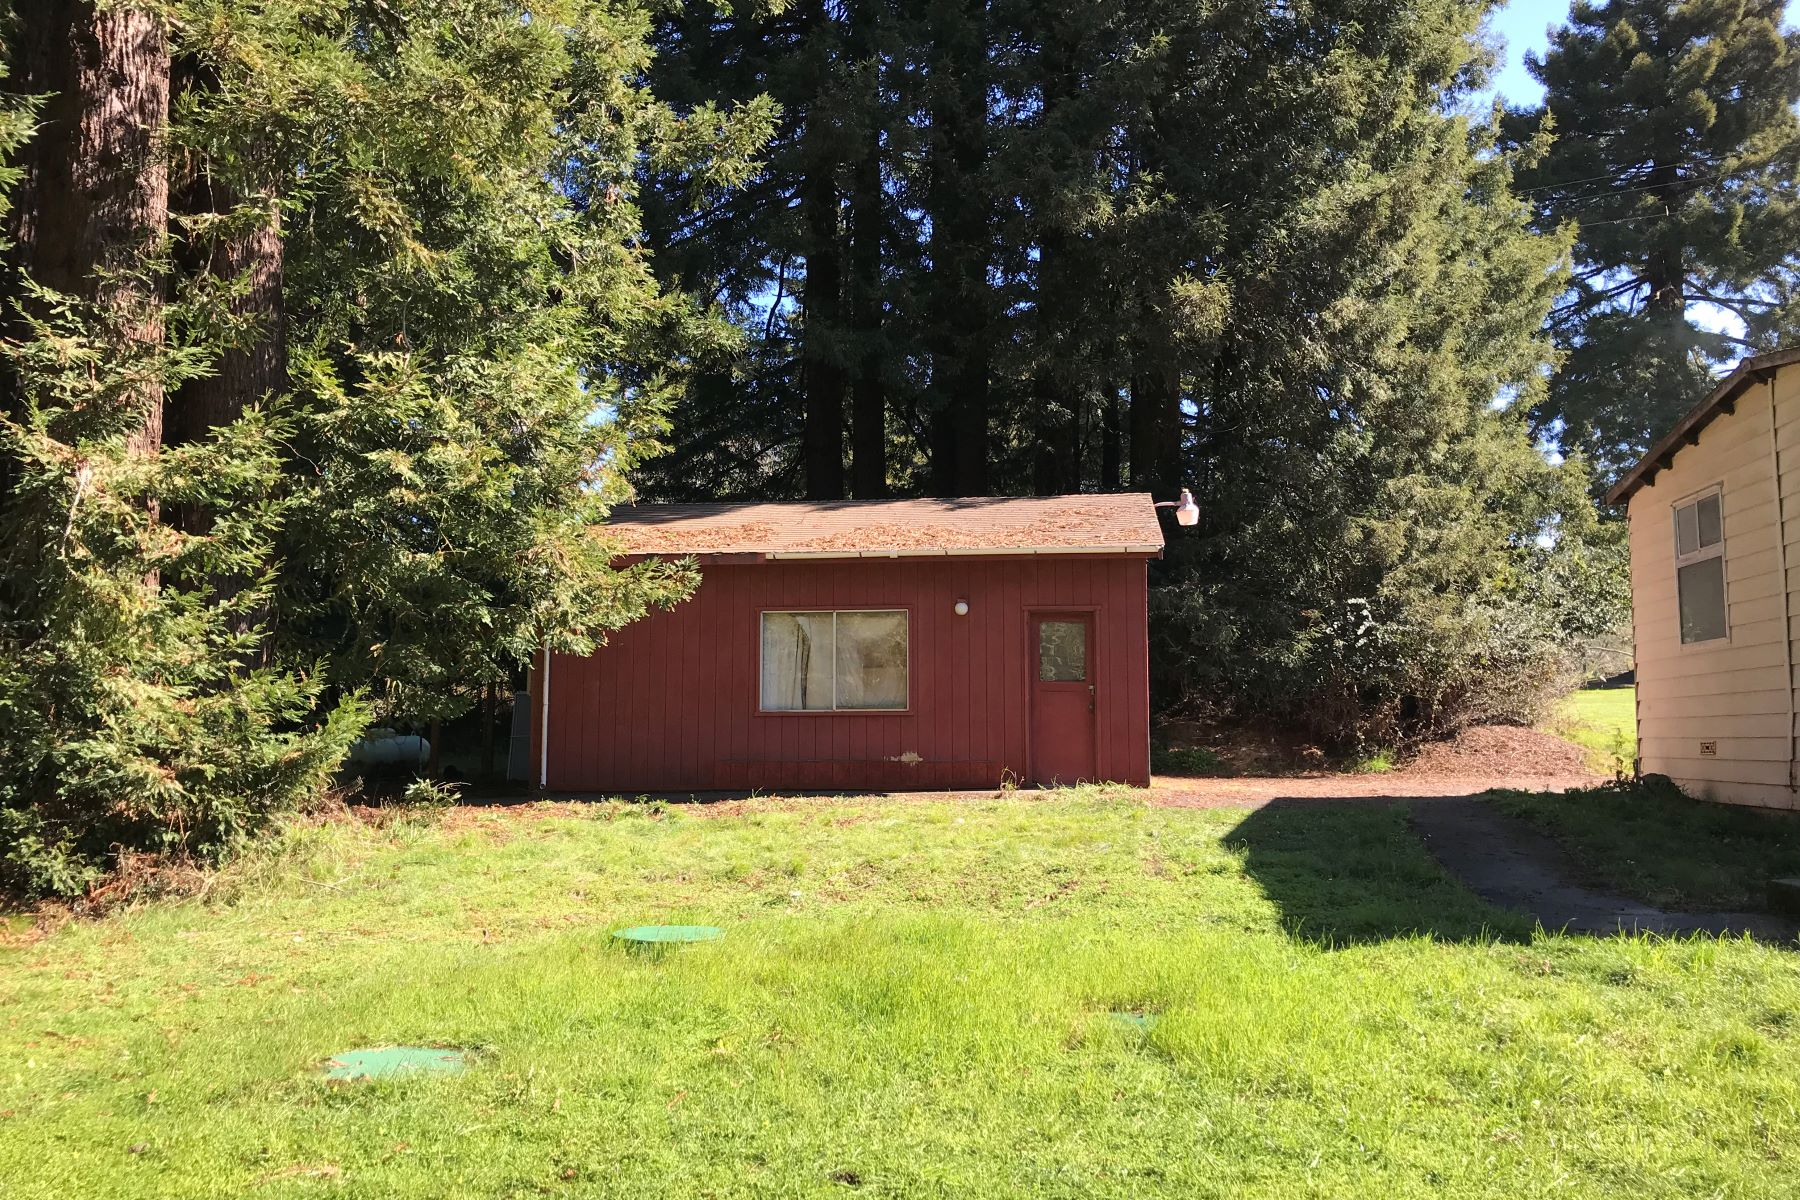 Additional photo for property listing at Sherwood Road Location 30420 Sherwood Road Fort Bragg, California 95437 Estados Unidos